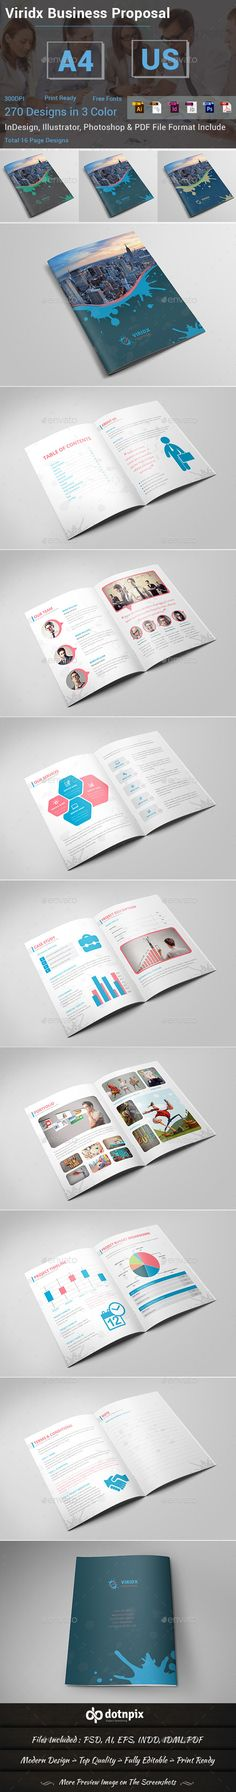 The Proposal Download, Stationery and Corpus - business proposal download